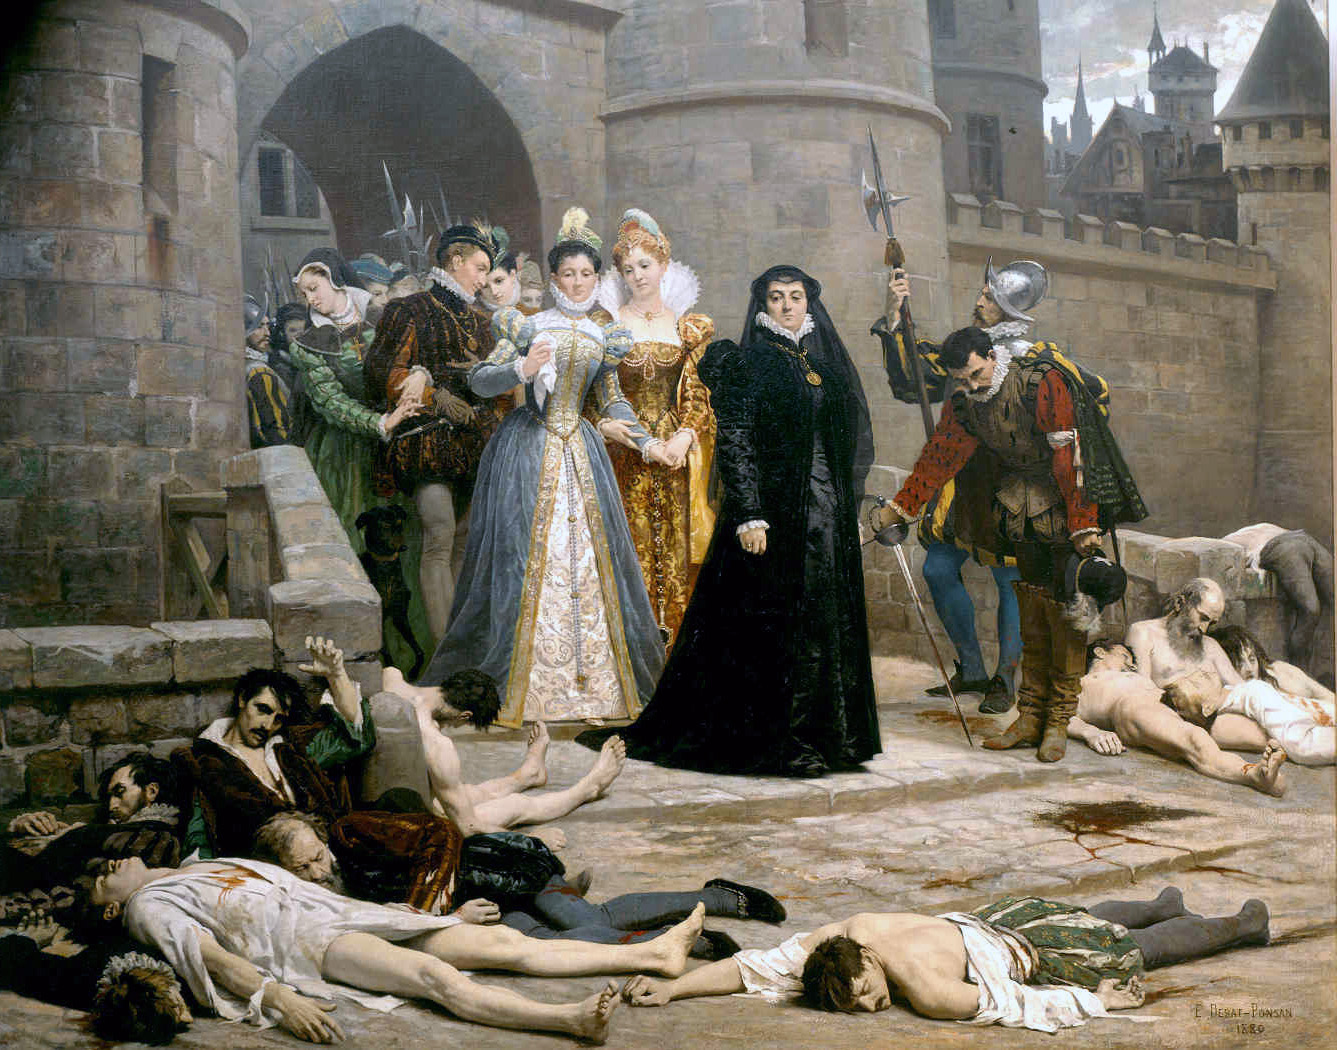 One morning at the gates of the Louvre, 19th-century painting by Édouard Debat-Ponsan(1847-1913). Catherine de' Medici is in black.